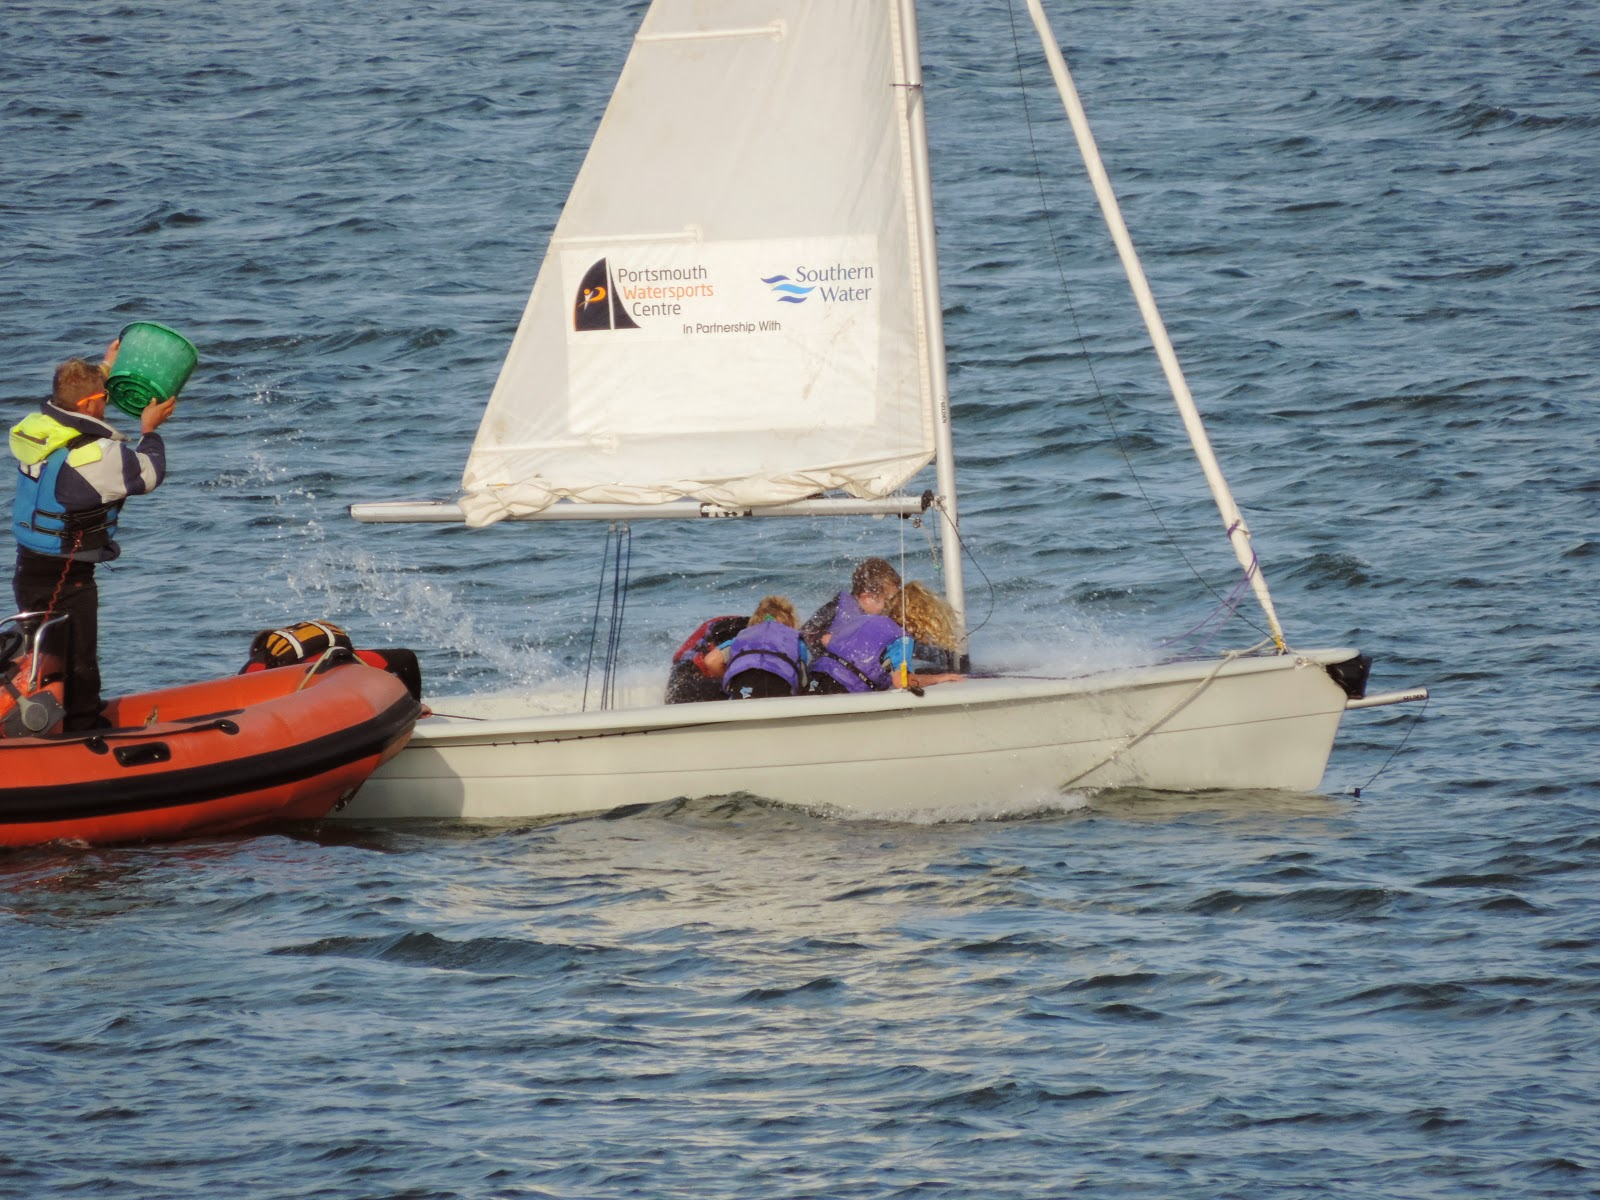 yacht training in langstone harbour